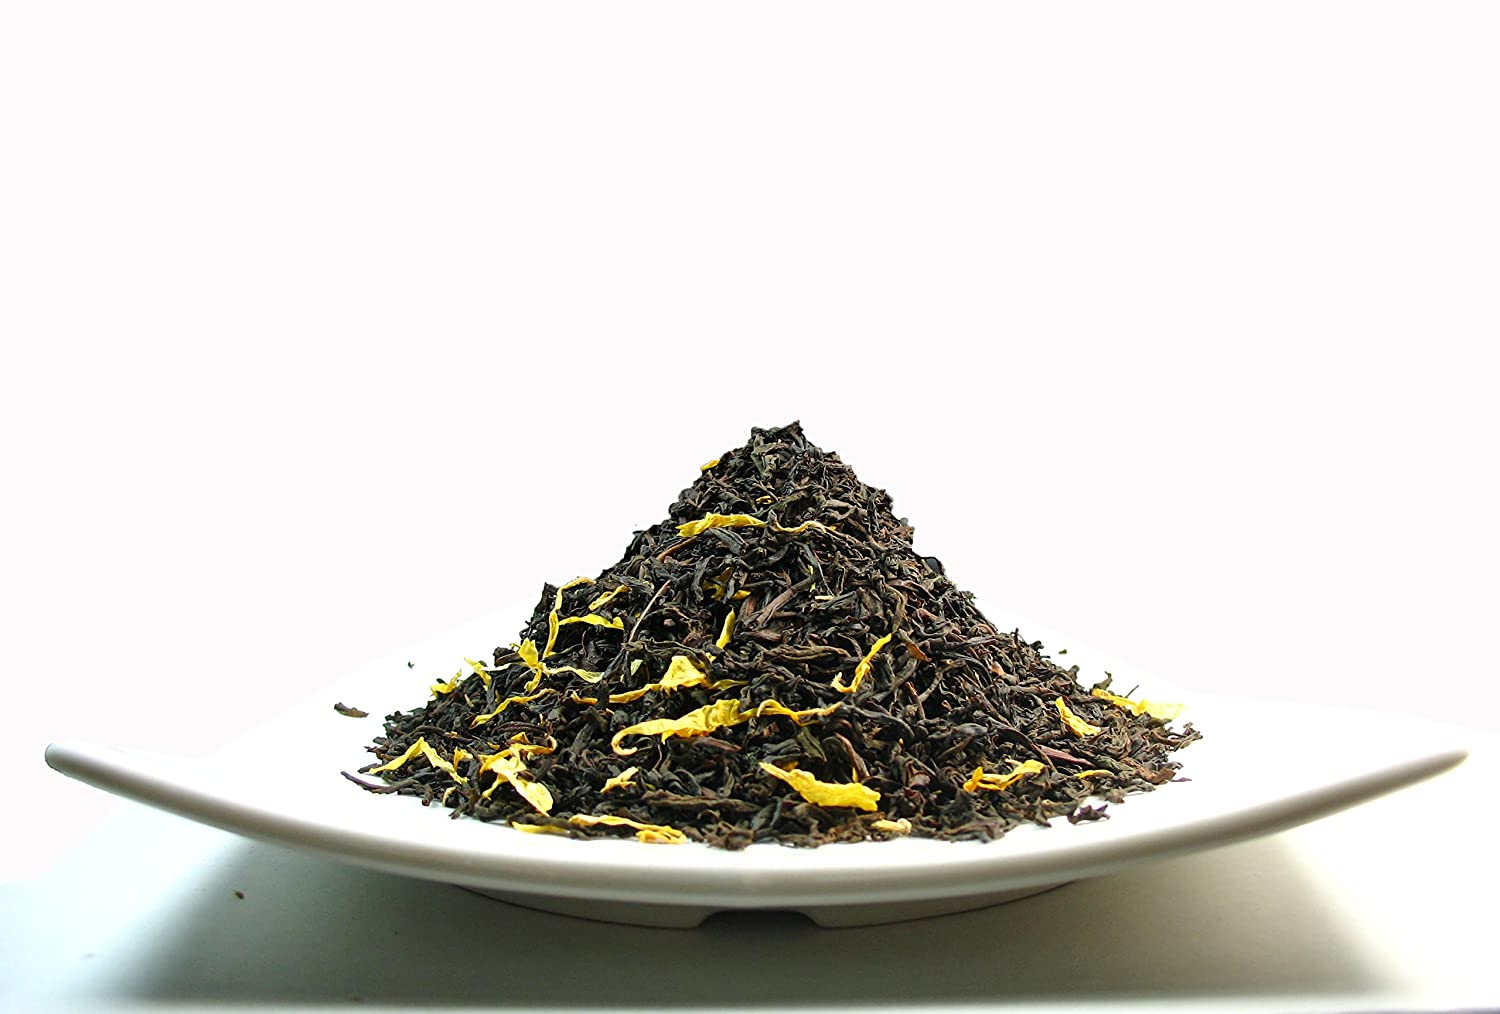 Buttered Rum Tea, Mixed blend of Toasted Coconut, Vanilla beans mingled with Black tea - 1lb Bag